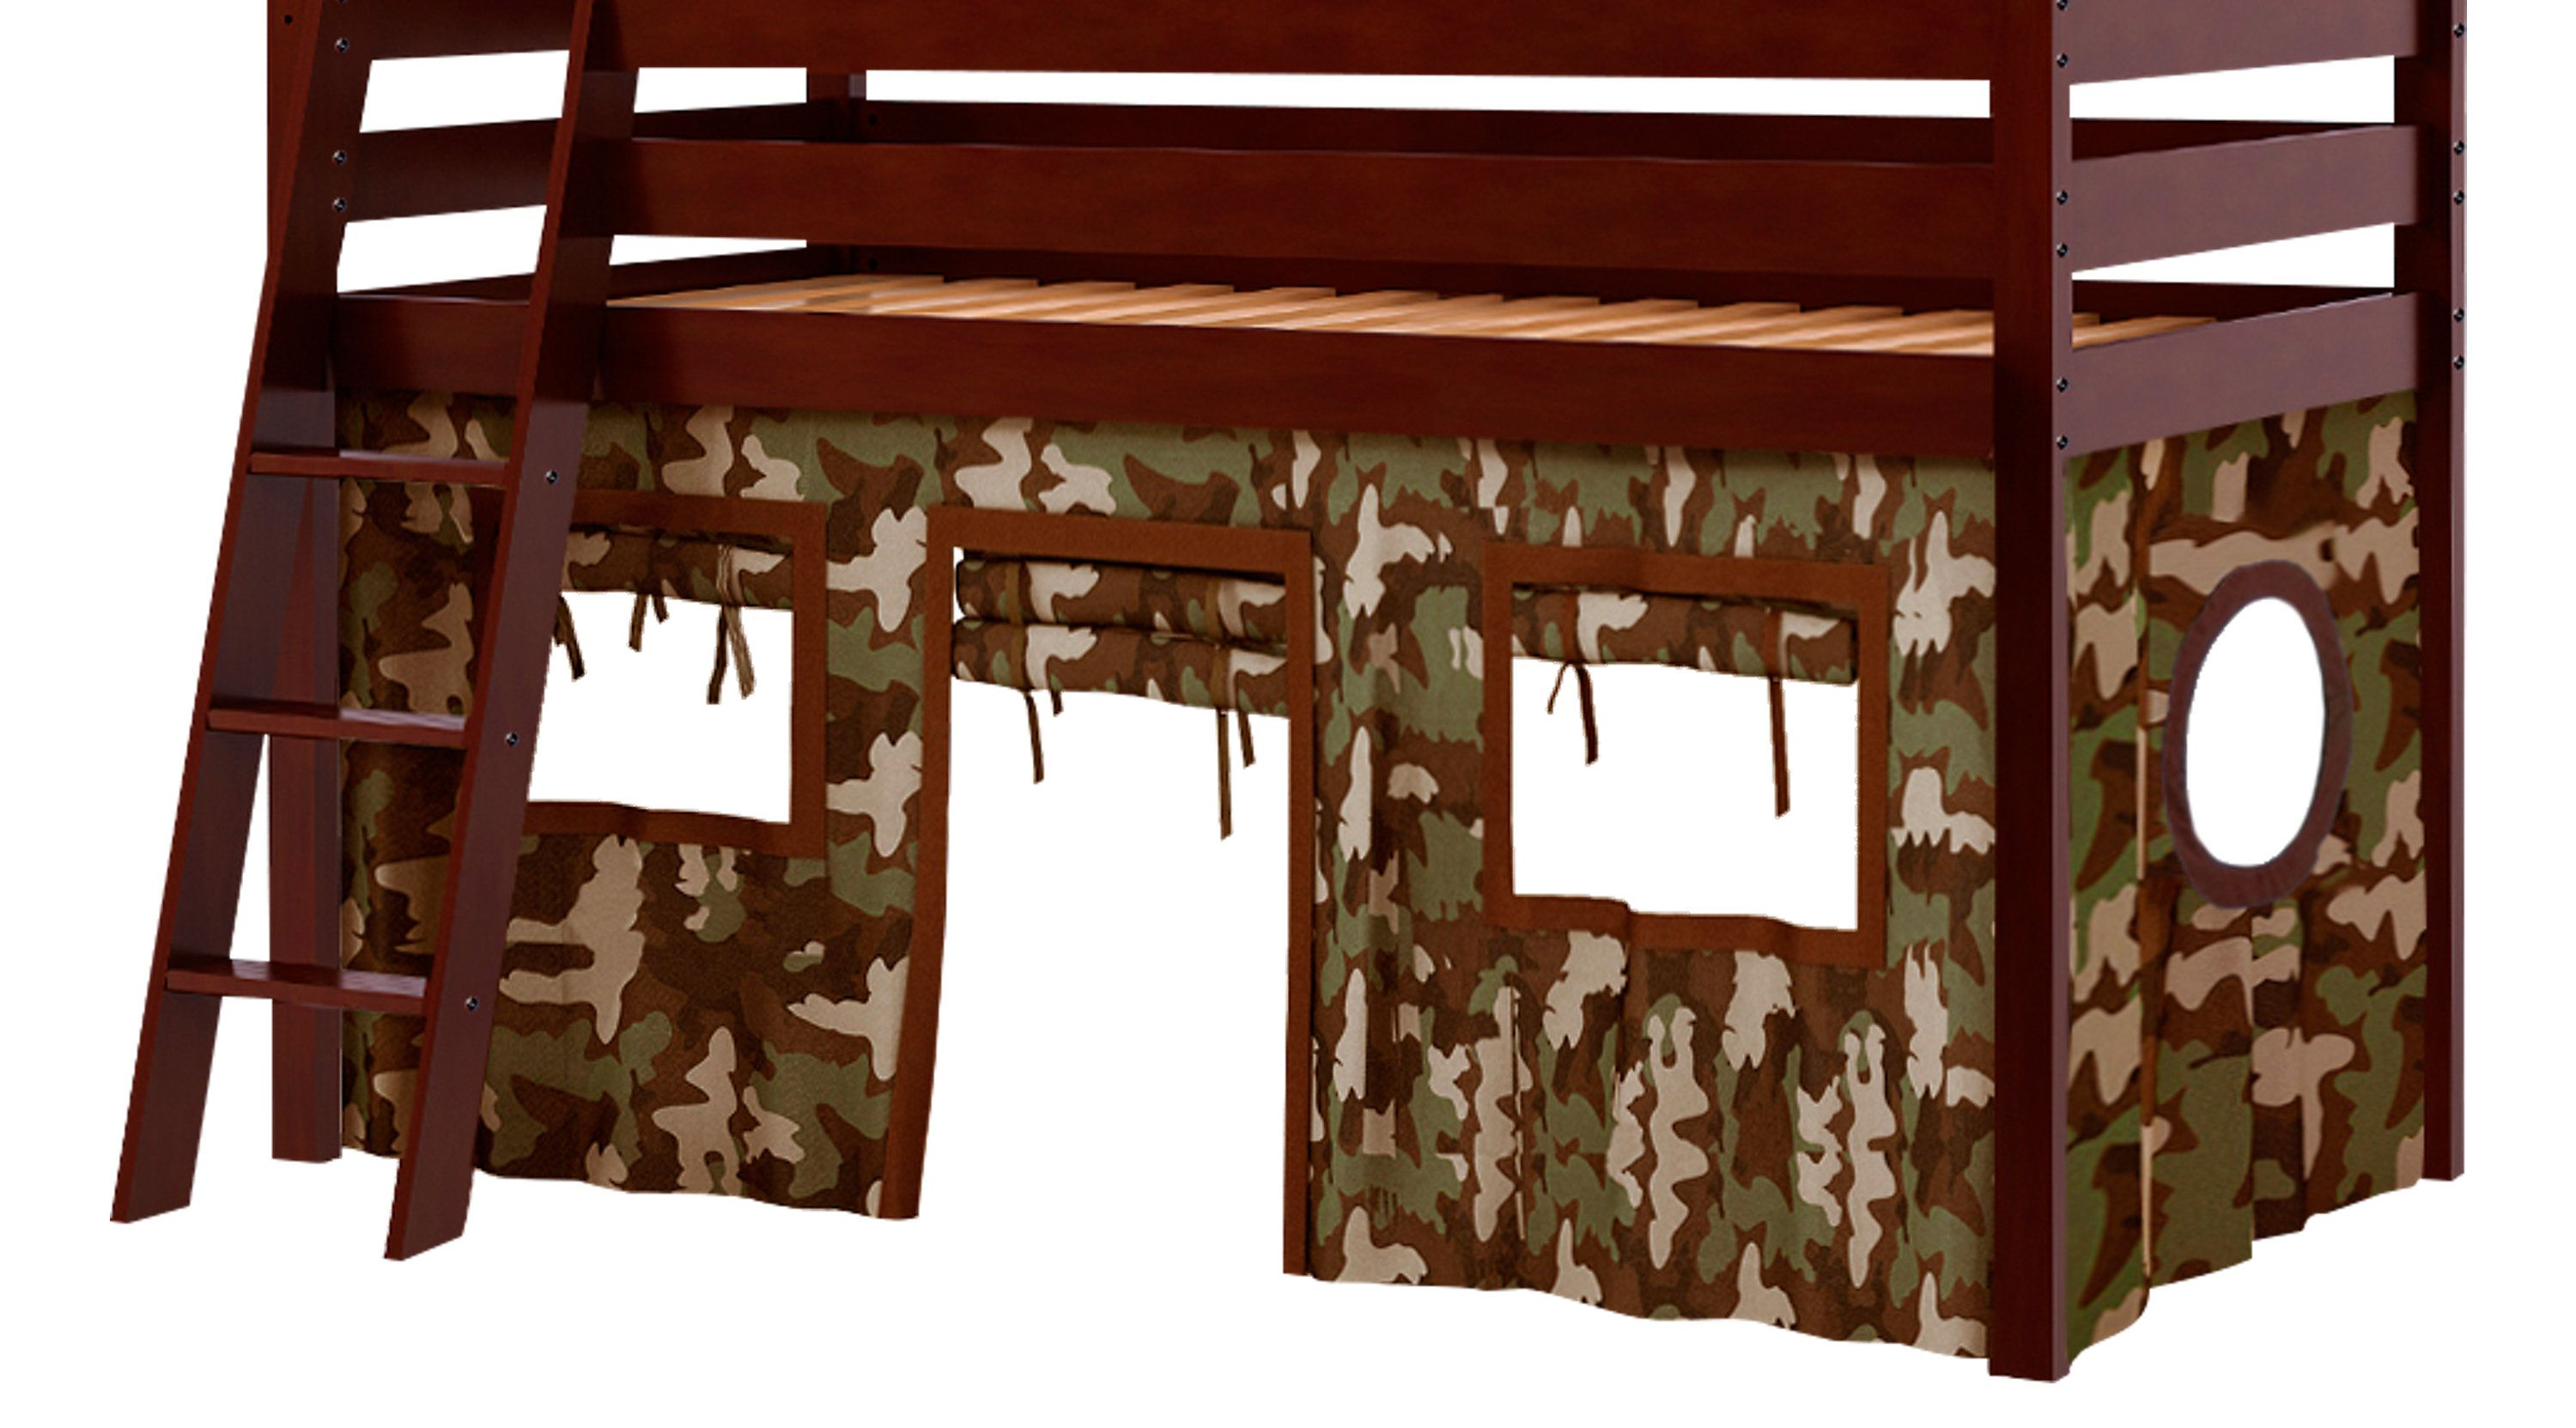 Bunk Beds Rooms To Go Camo Cabin Cherry Jr Tent Loft Bed 3487033p Loft Bed Rooms To Go Furniture Bunk Bed Rooms